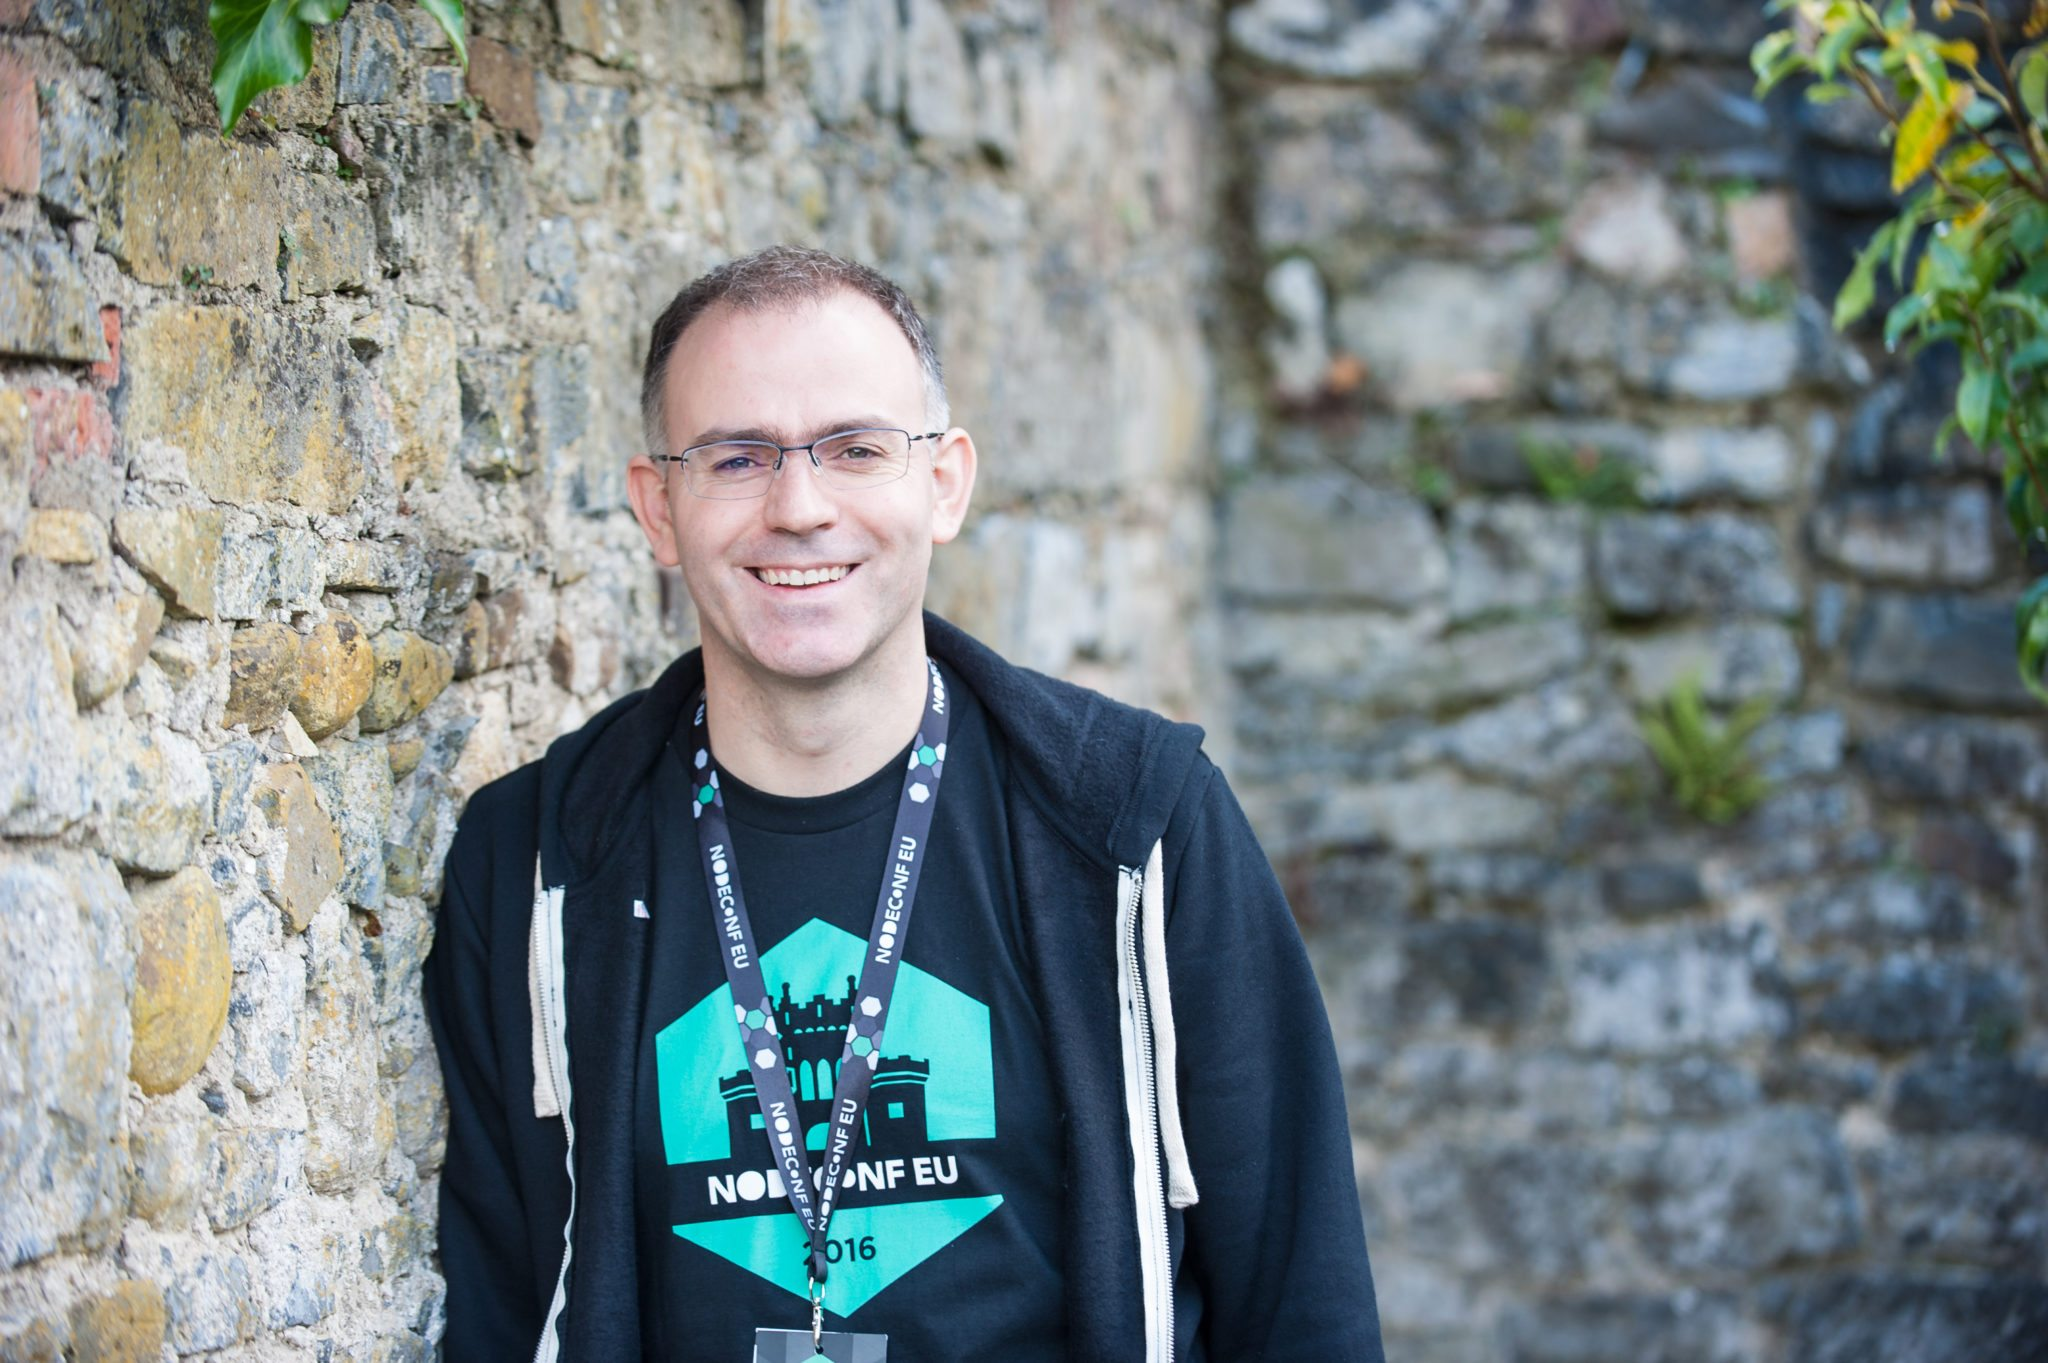 Paul Savage at NodeConf EU